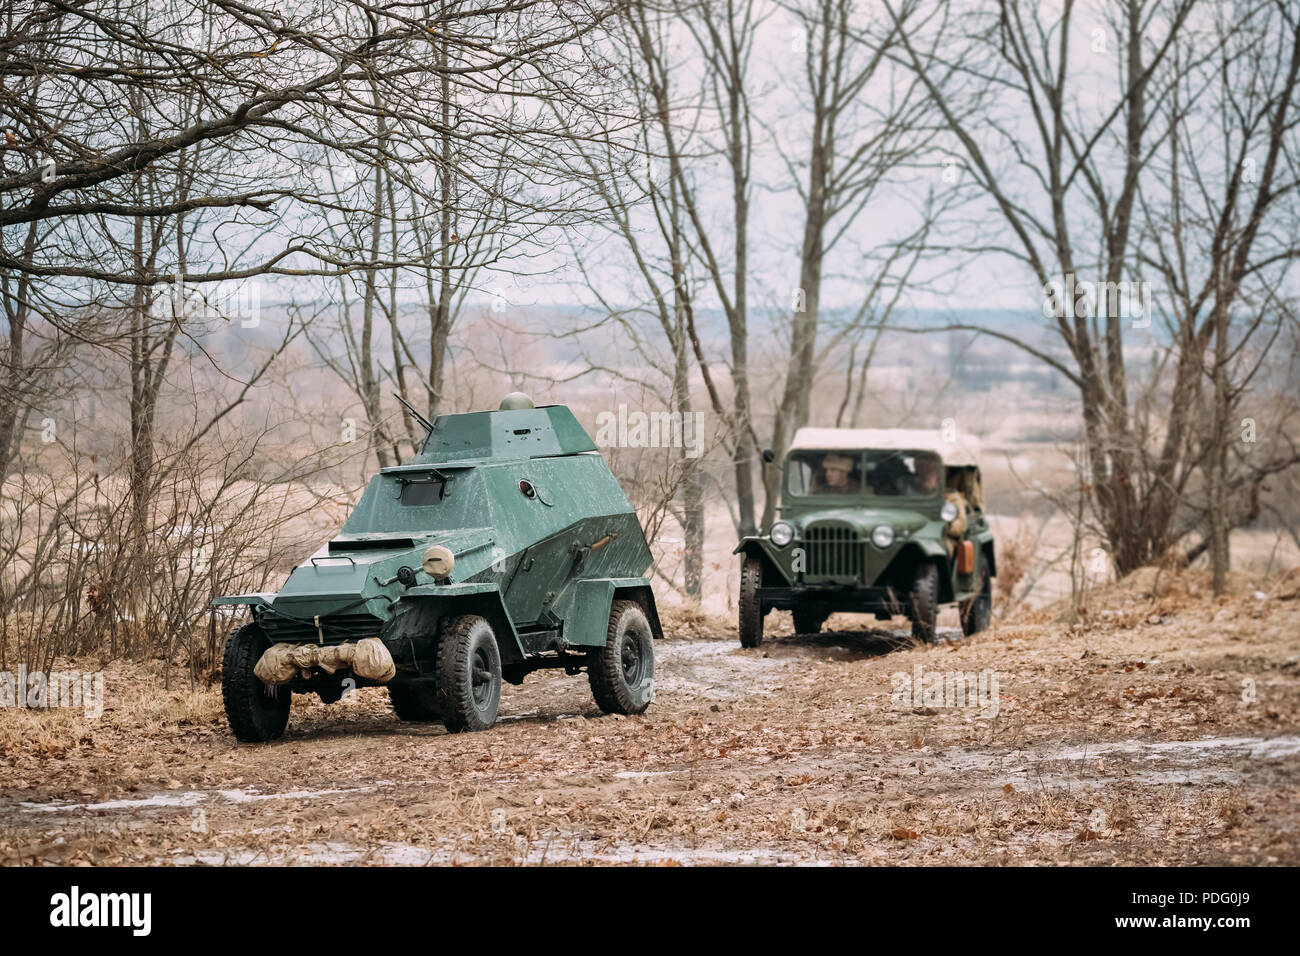 Russian Armored Soviet Scout Car Of World War Ii And Four Wheel Drive Army Truck Car Of World War Ii Parking In Autumn Forest Stock Photo Alamy